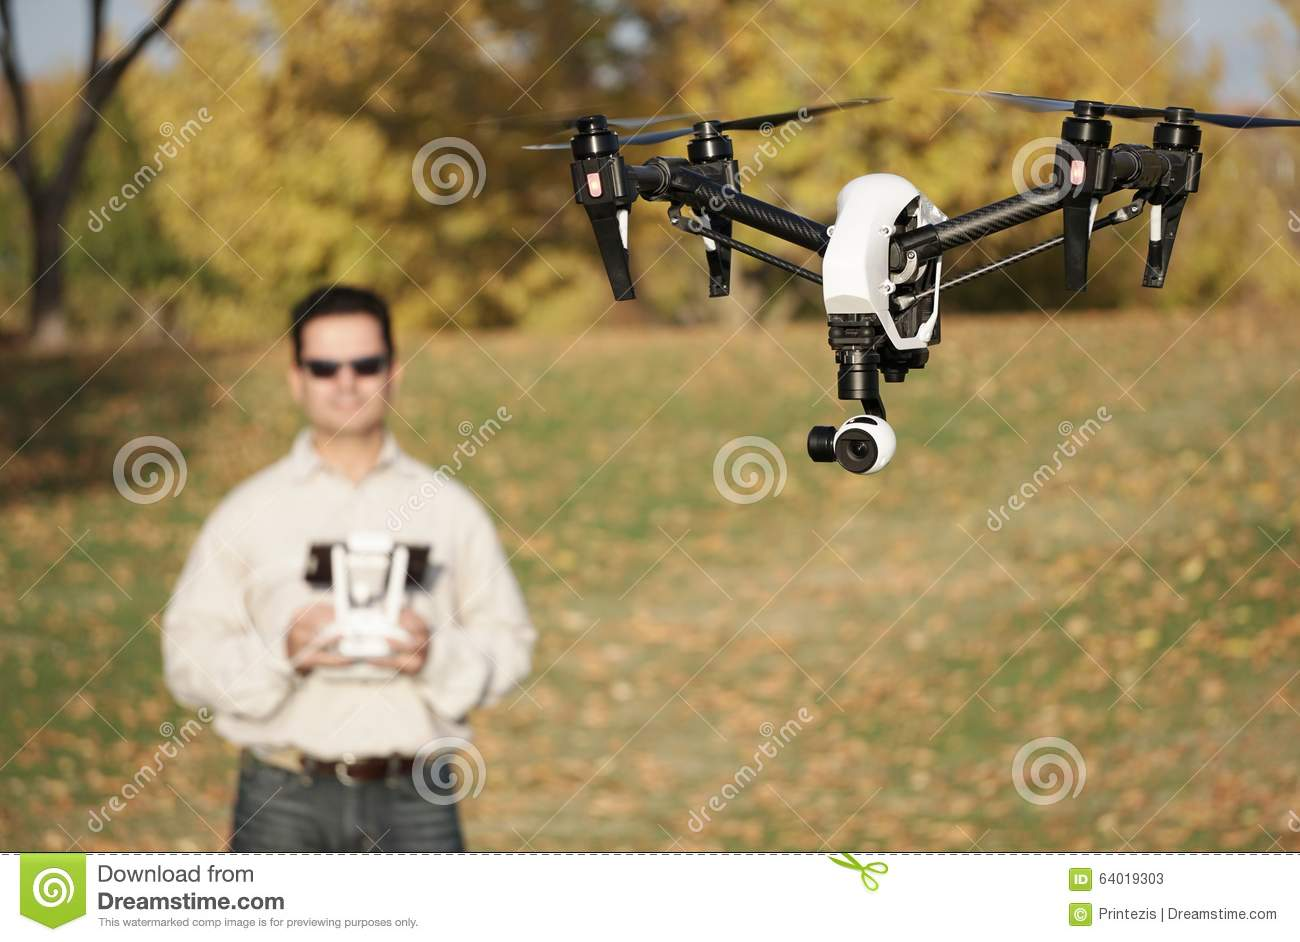 Man Flying A High-Tech Camera Drone (Fall Trees & Leaves in Background)